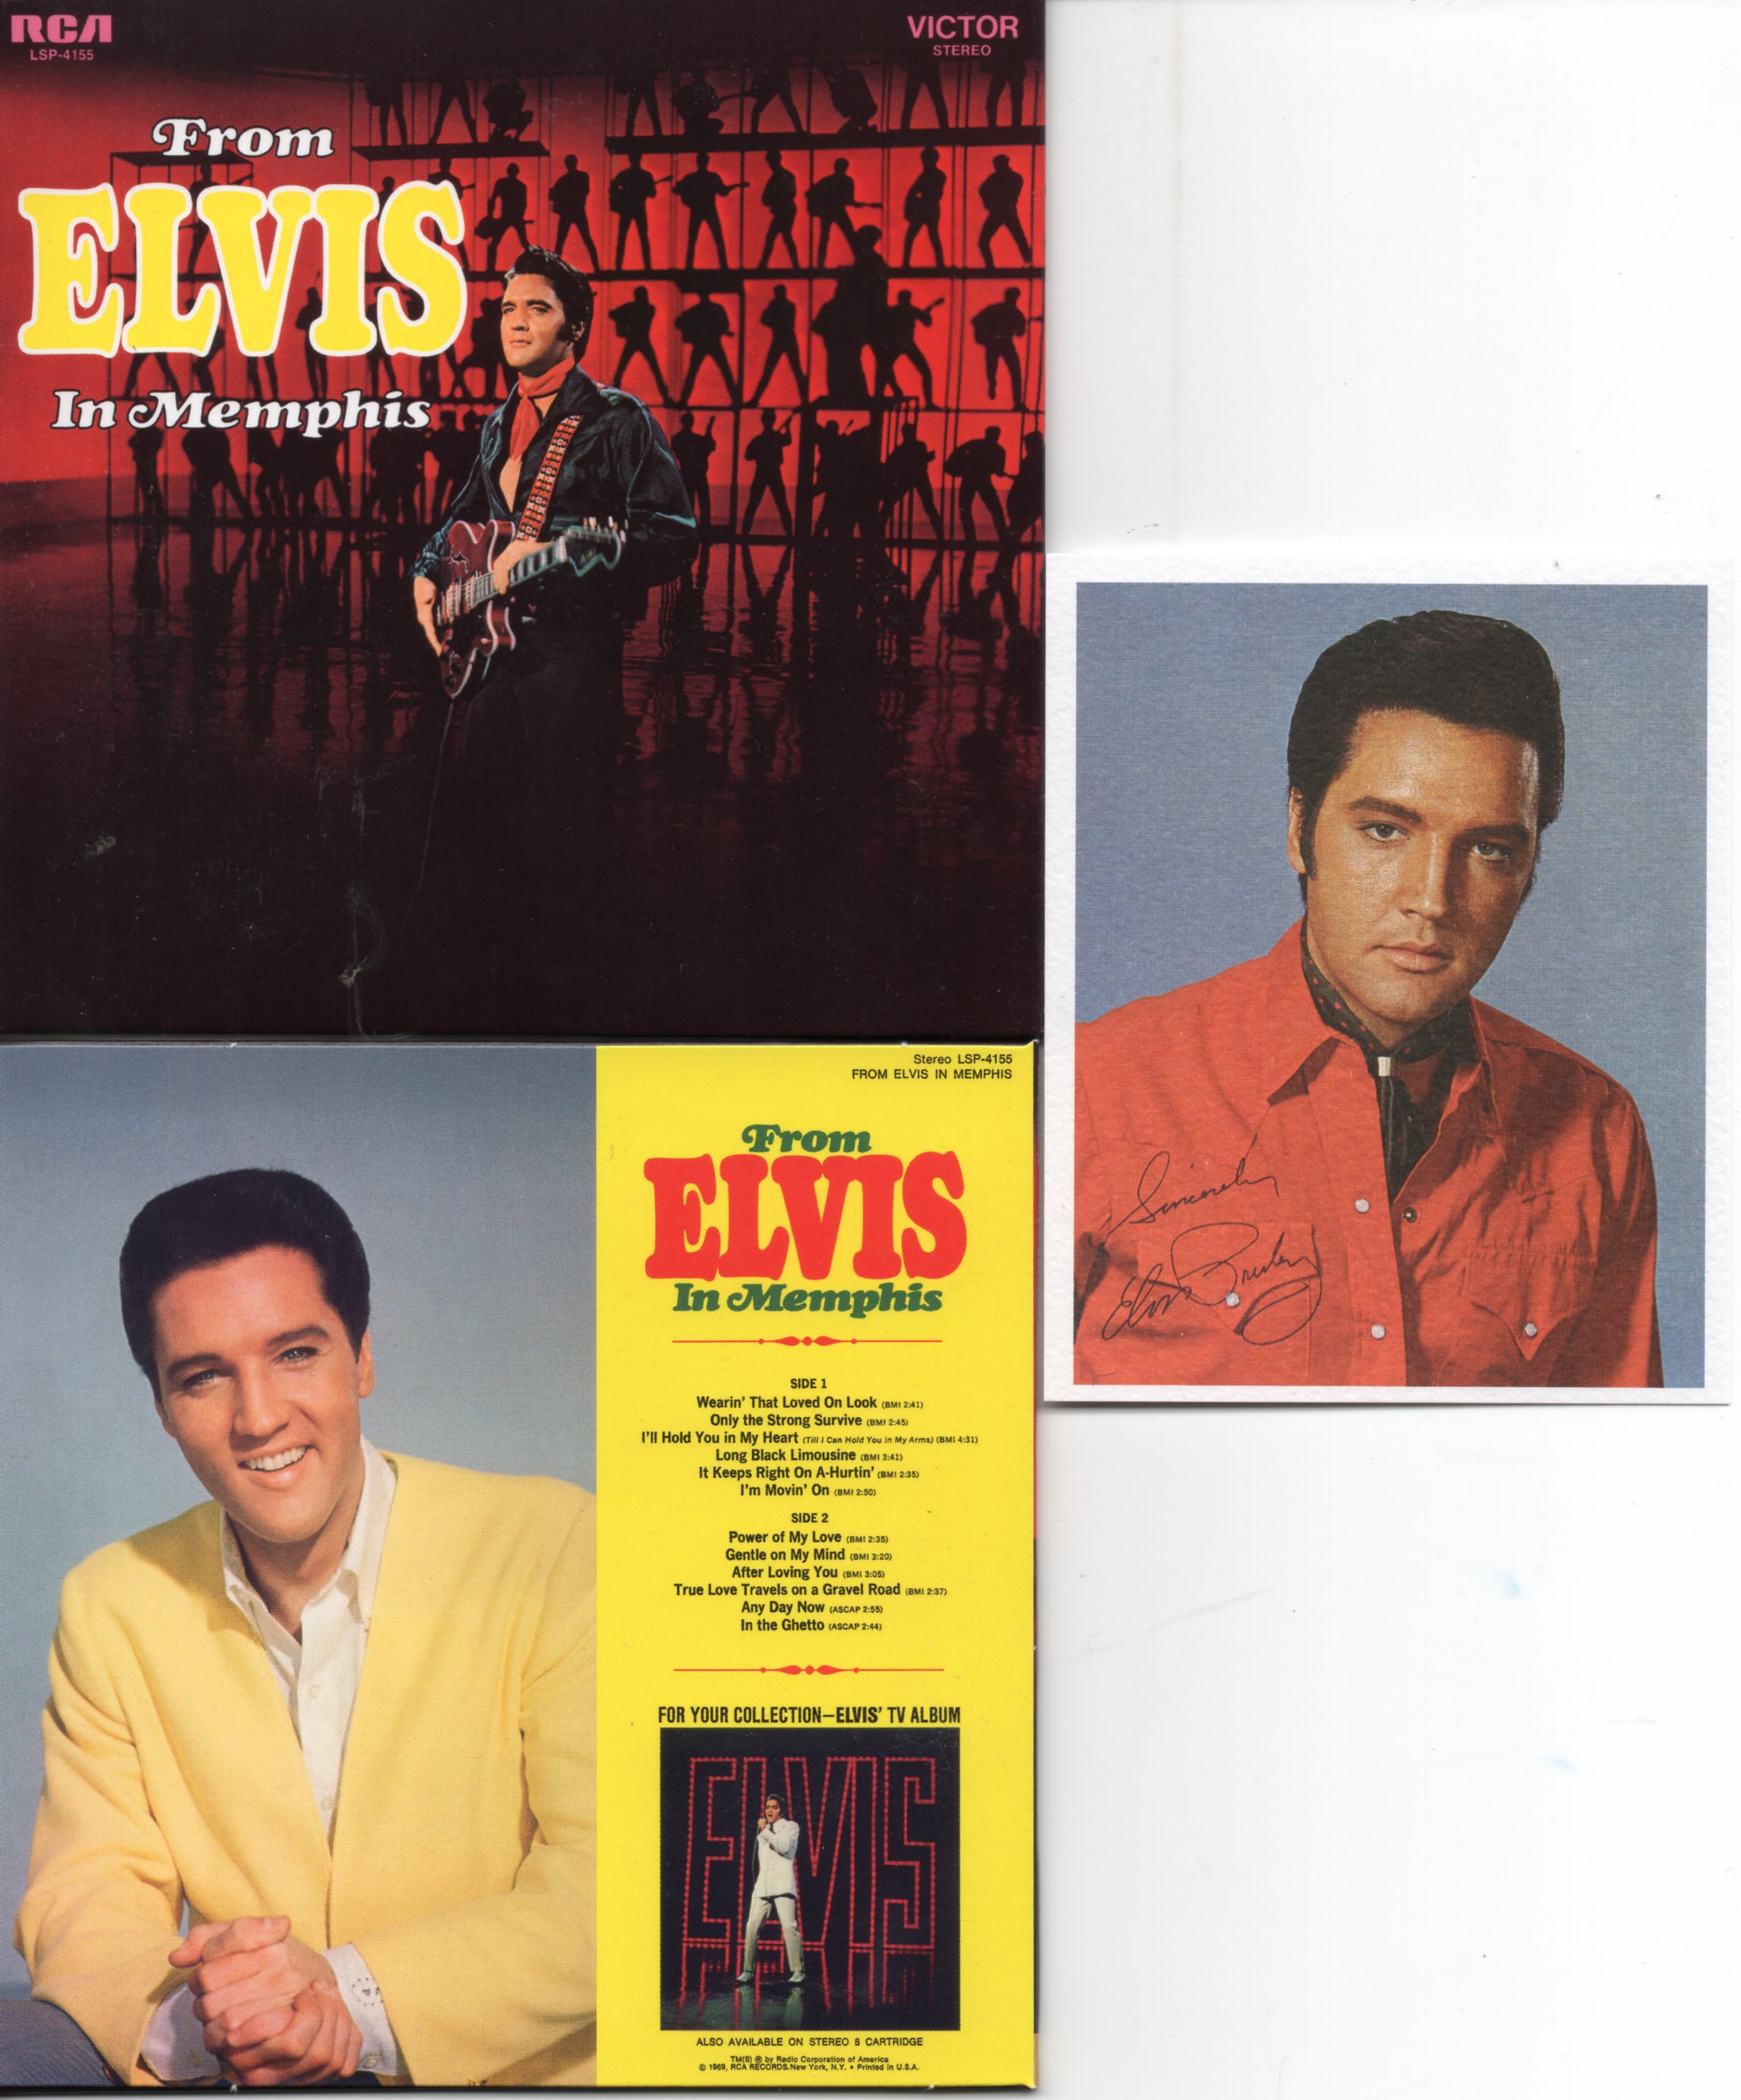 Elvis PRESLEY - From Elvis In Memphis (1969 - Mini Lp Replica - 16-track Card Sleeve Inc Photo)